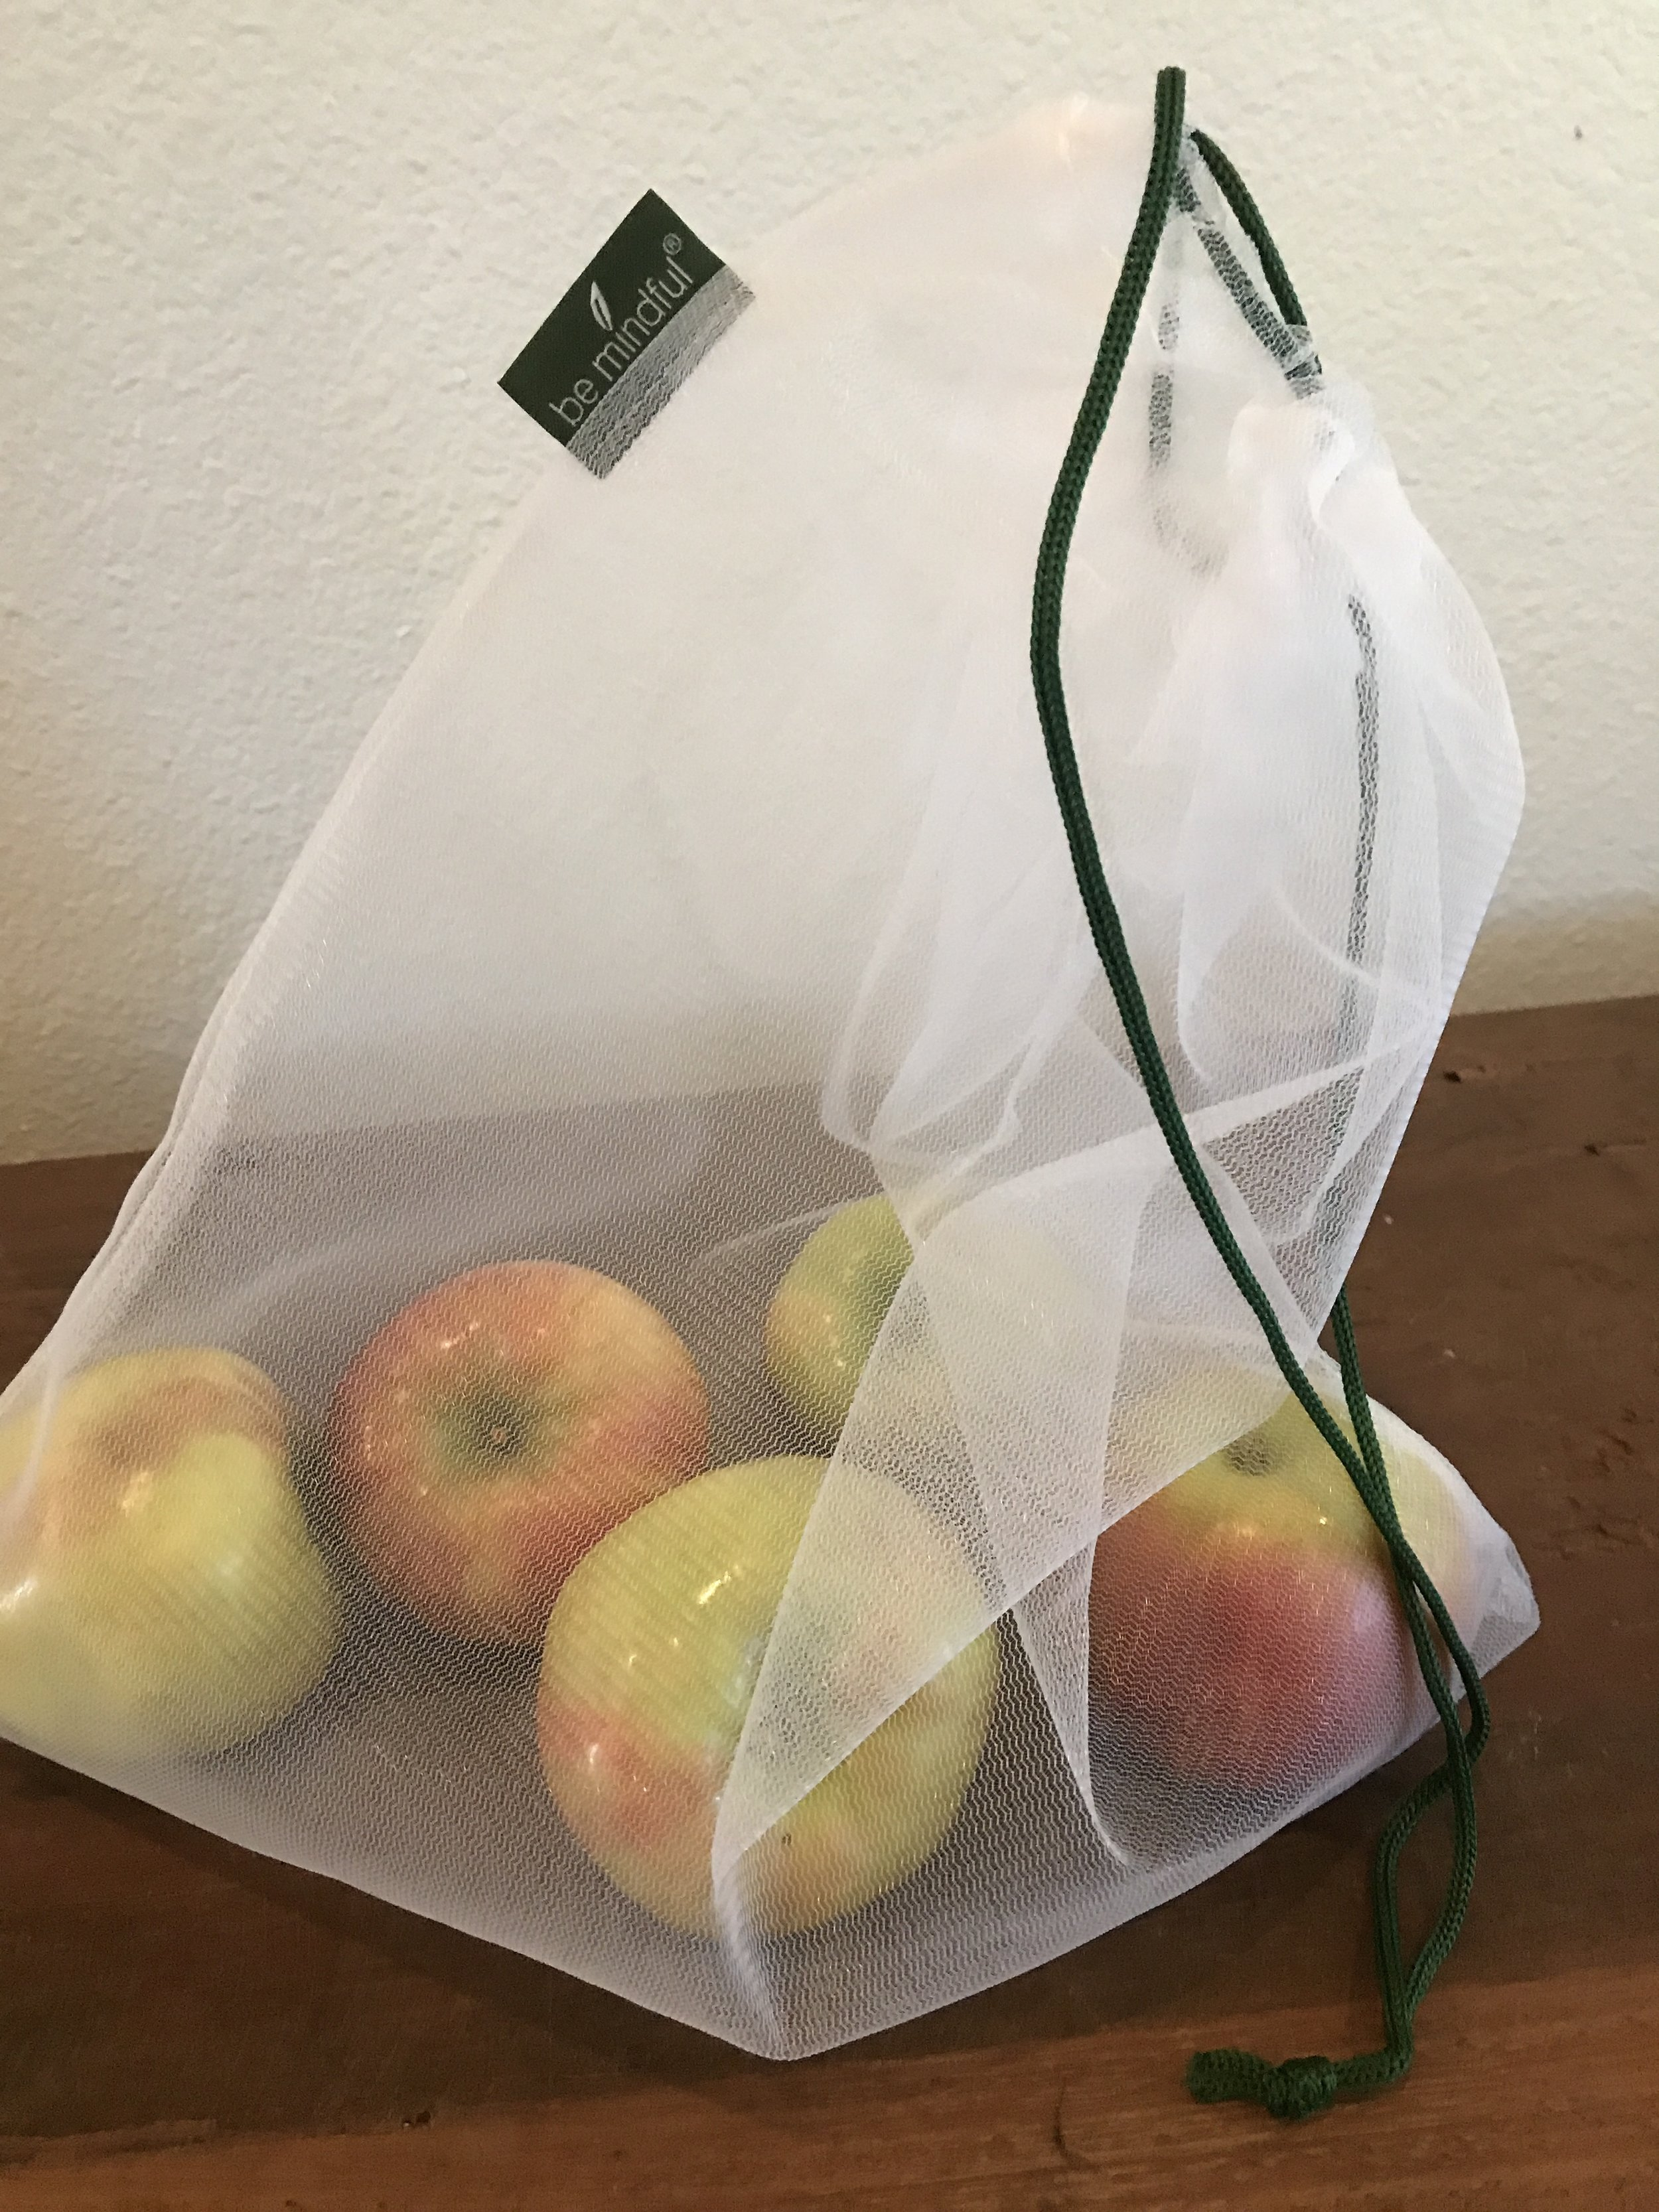 Coming to the site soon, Be Mindful Reusable Produce Bags. Please contact maureen@bemindful.com for more information